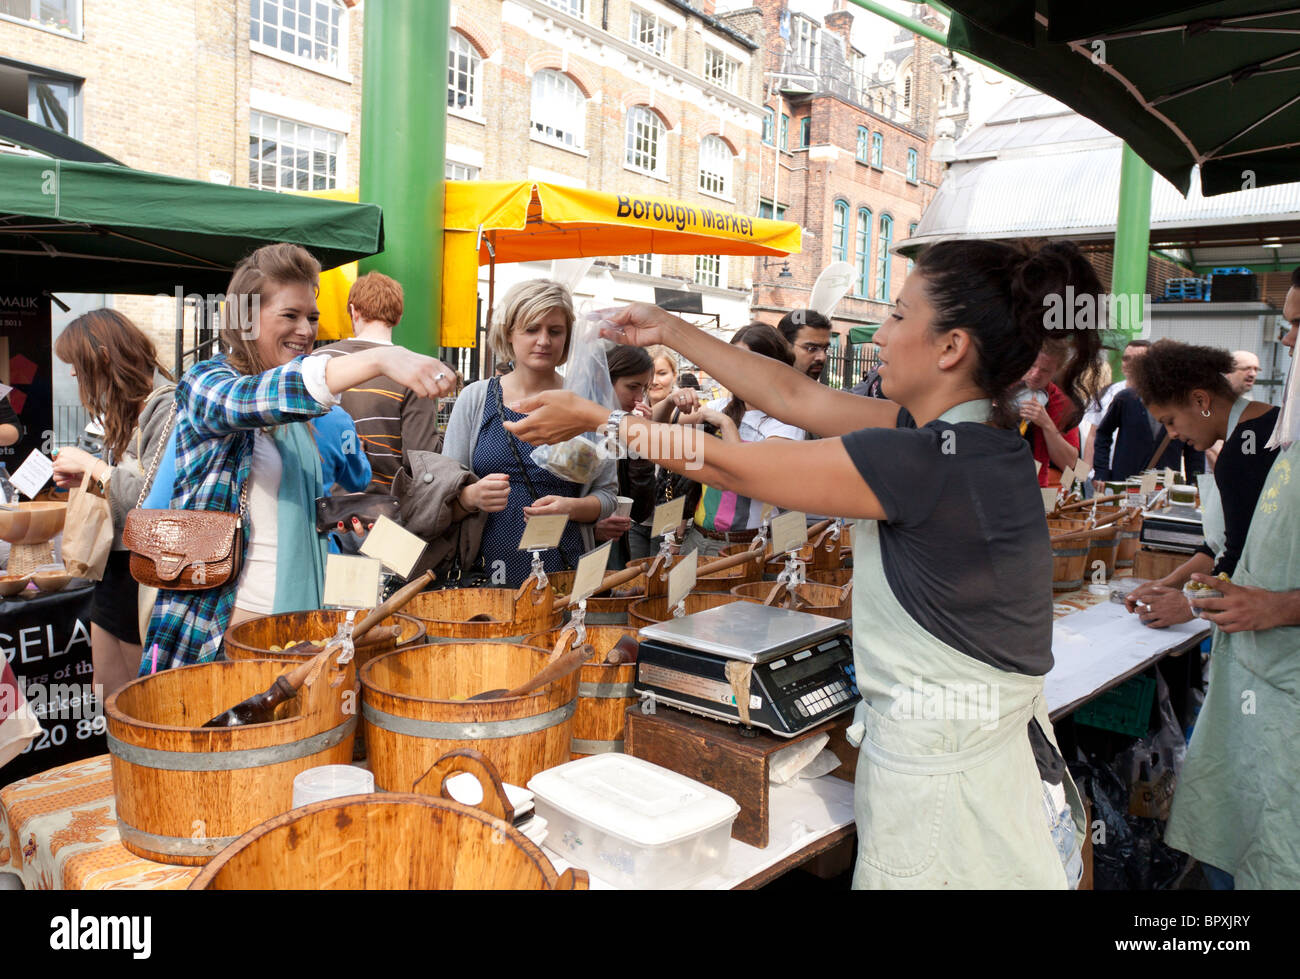 Olive Stall - Borough Market - Southwark - London - Stock Image